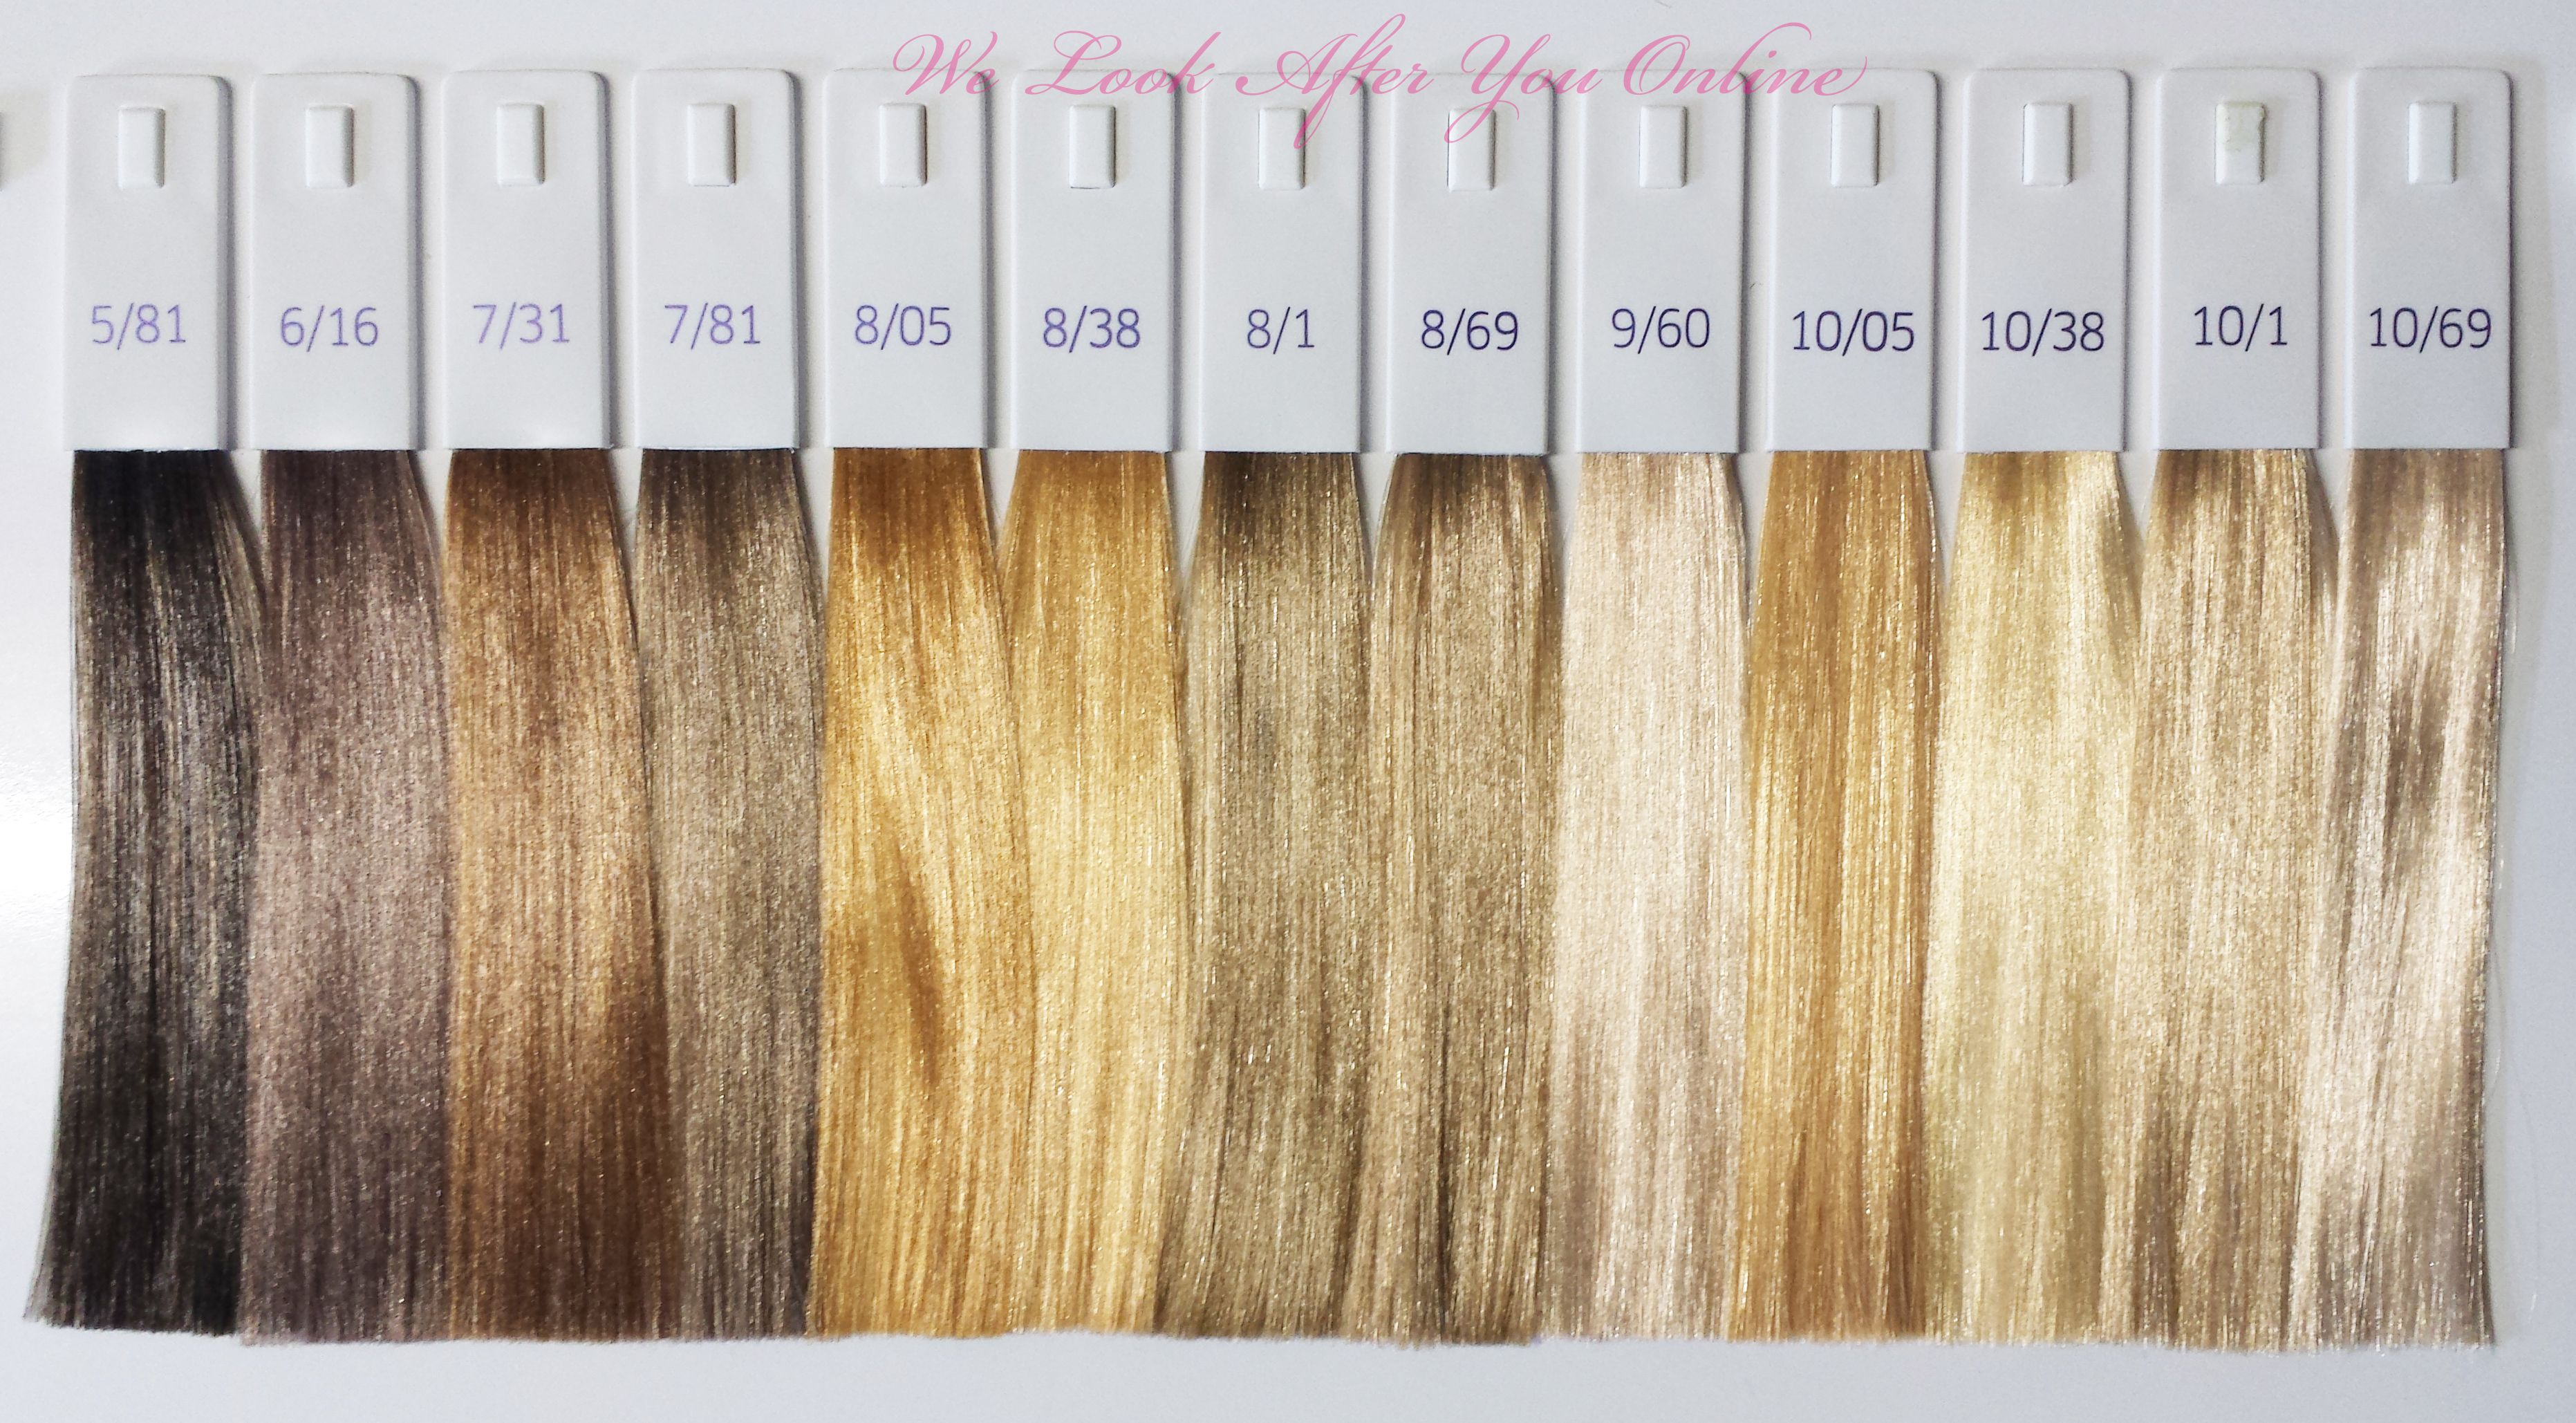 7 81 Wella Illumina Google Search Wella Hair Color Chart Wella Hair Color Hair Color Chart